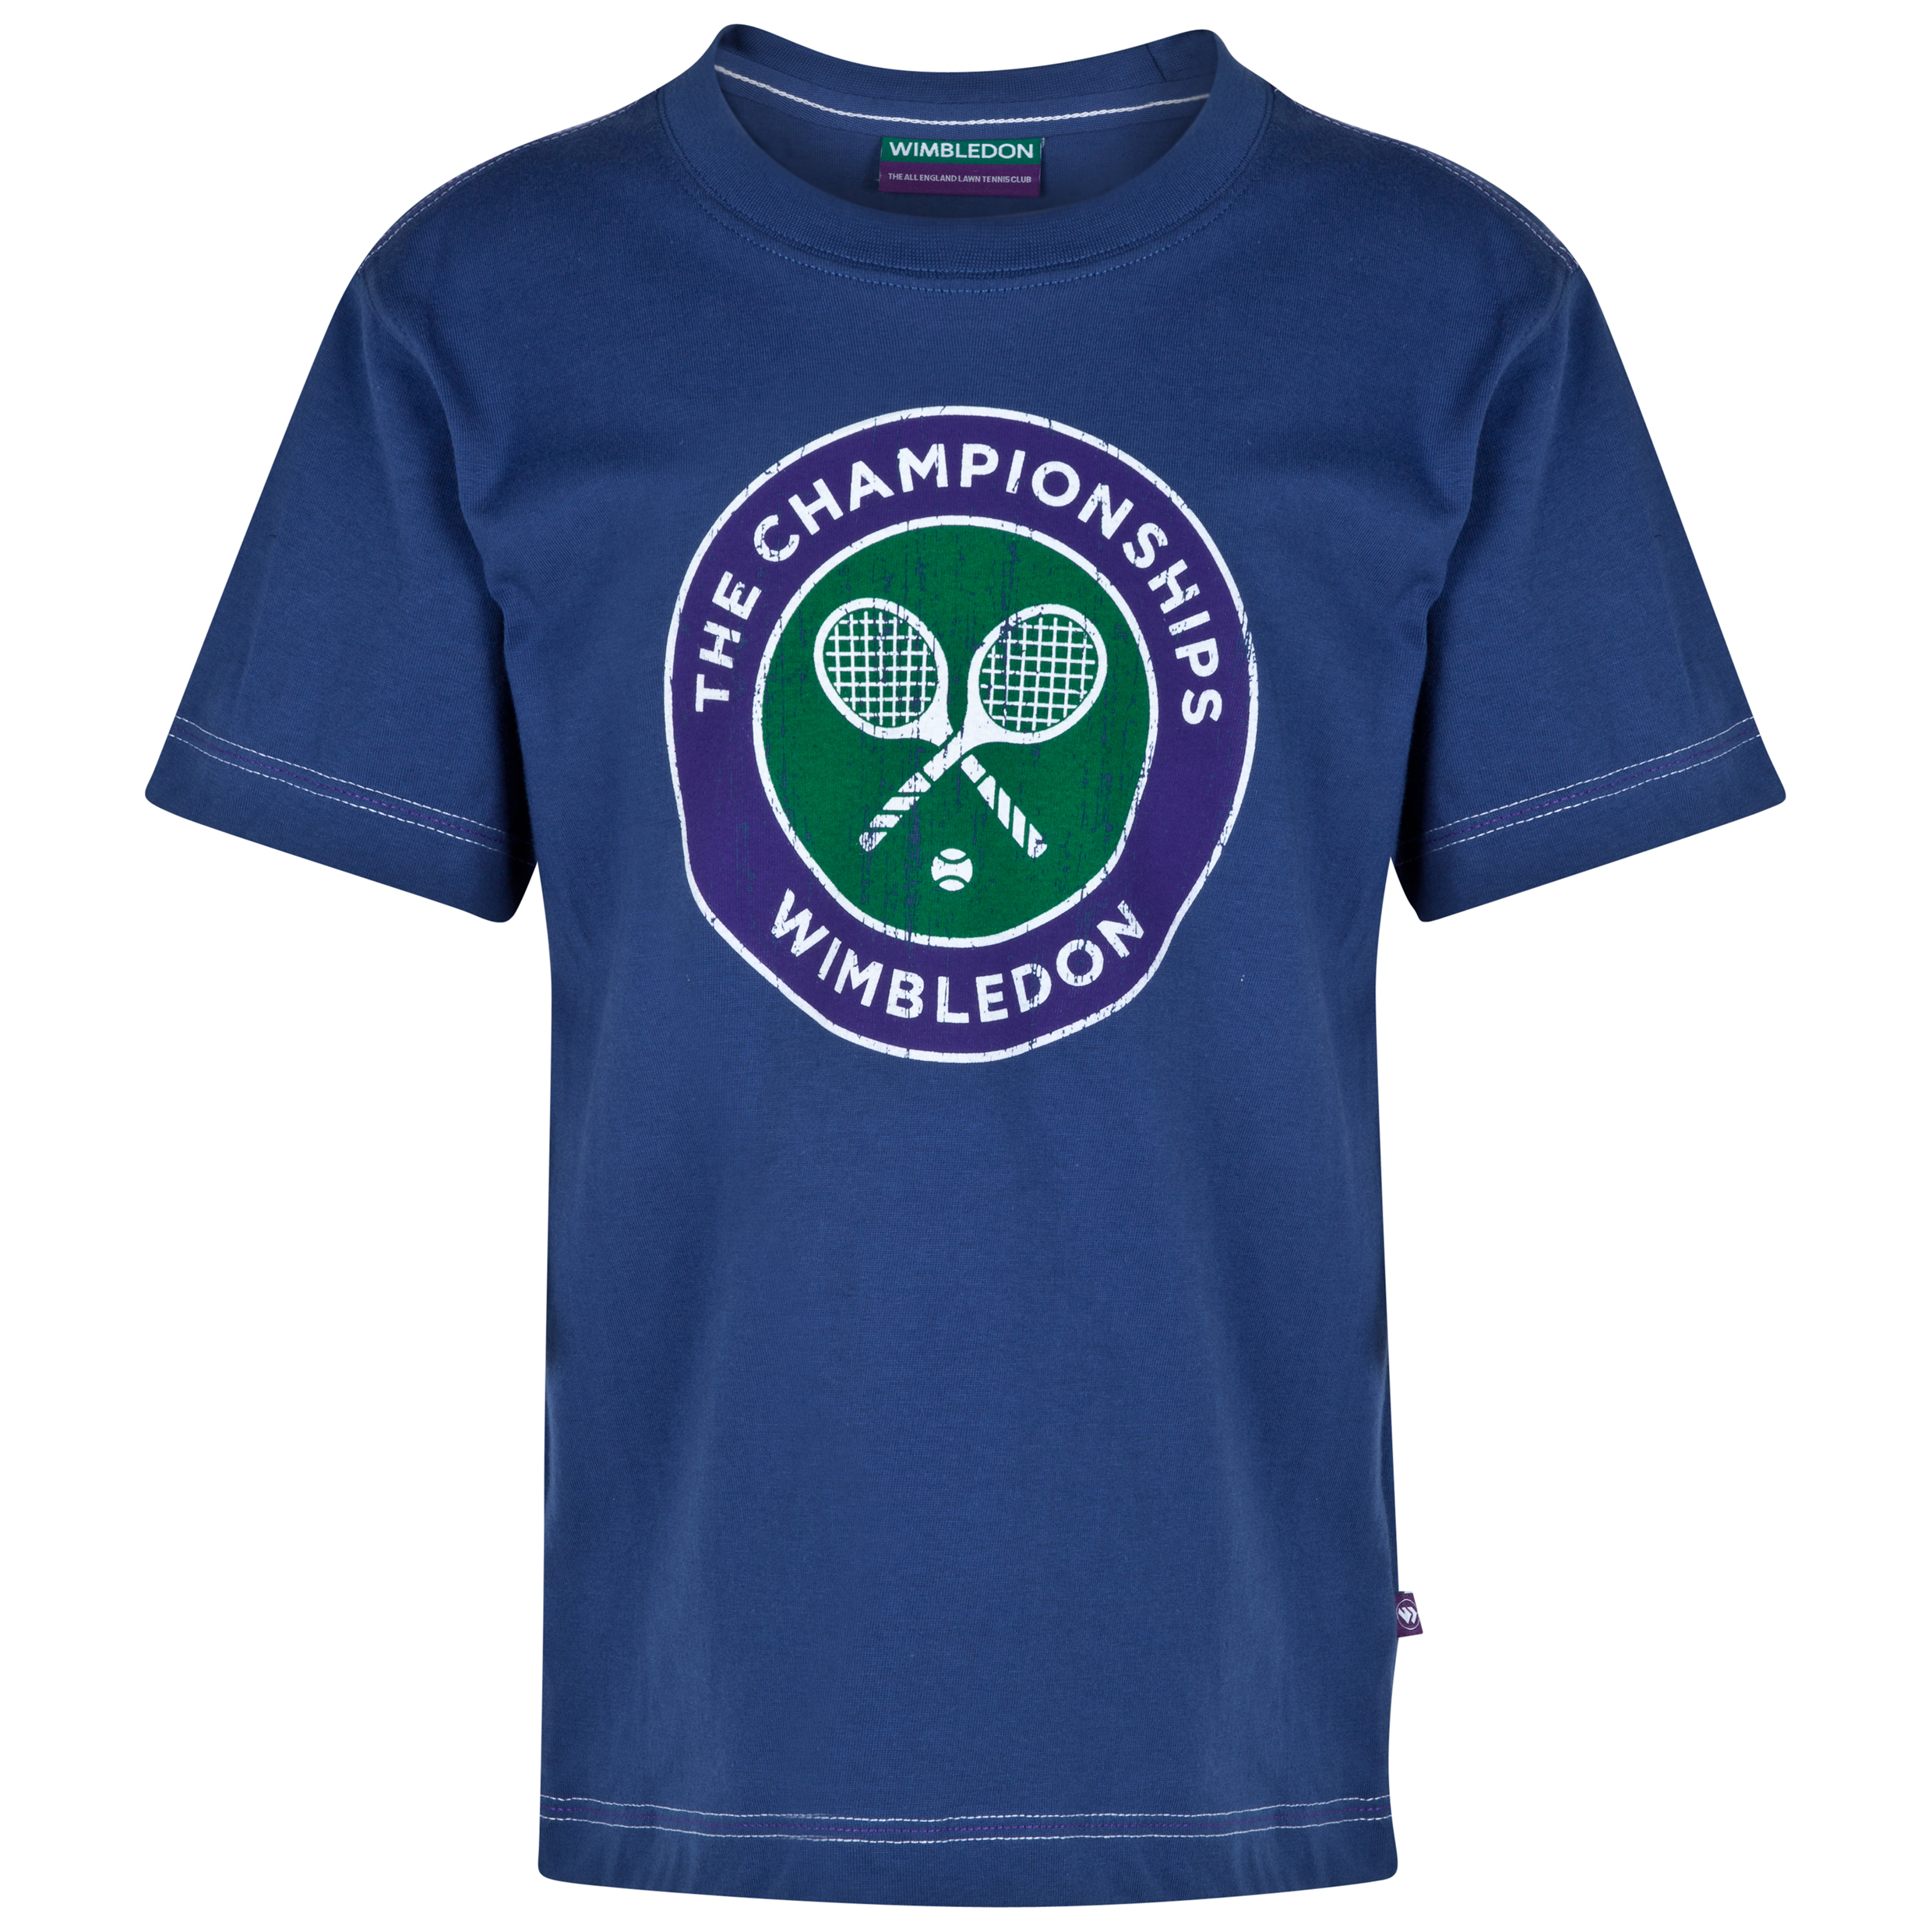 Wimbledon Classic Distressed Rackets T-Shirt - Kids Navy